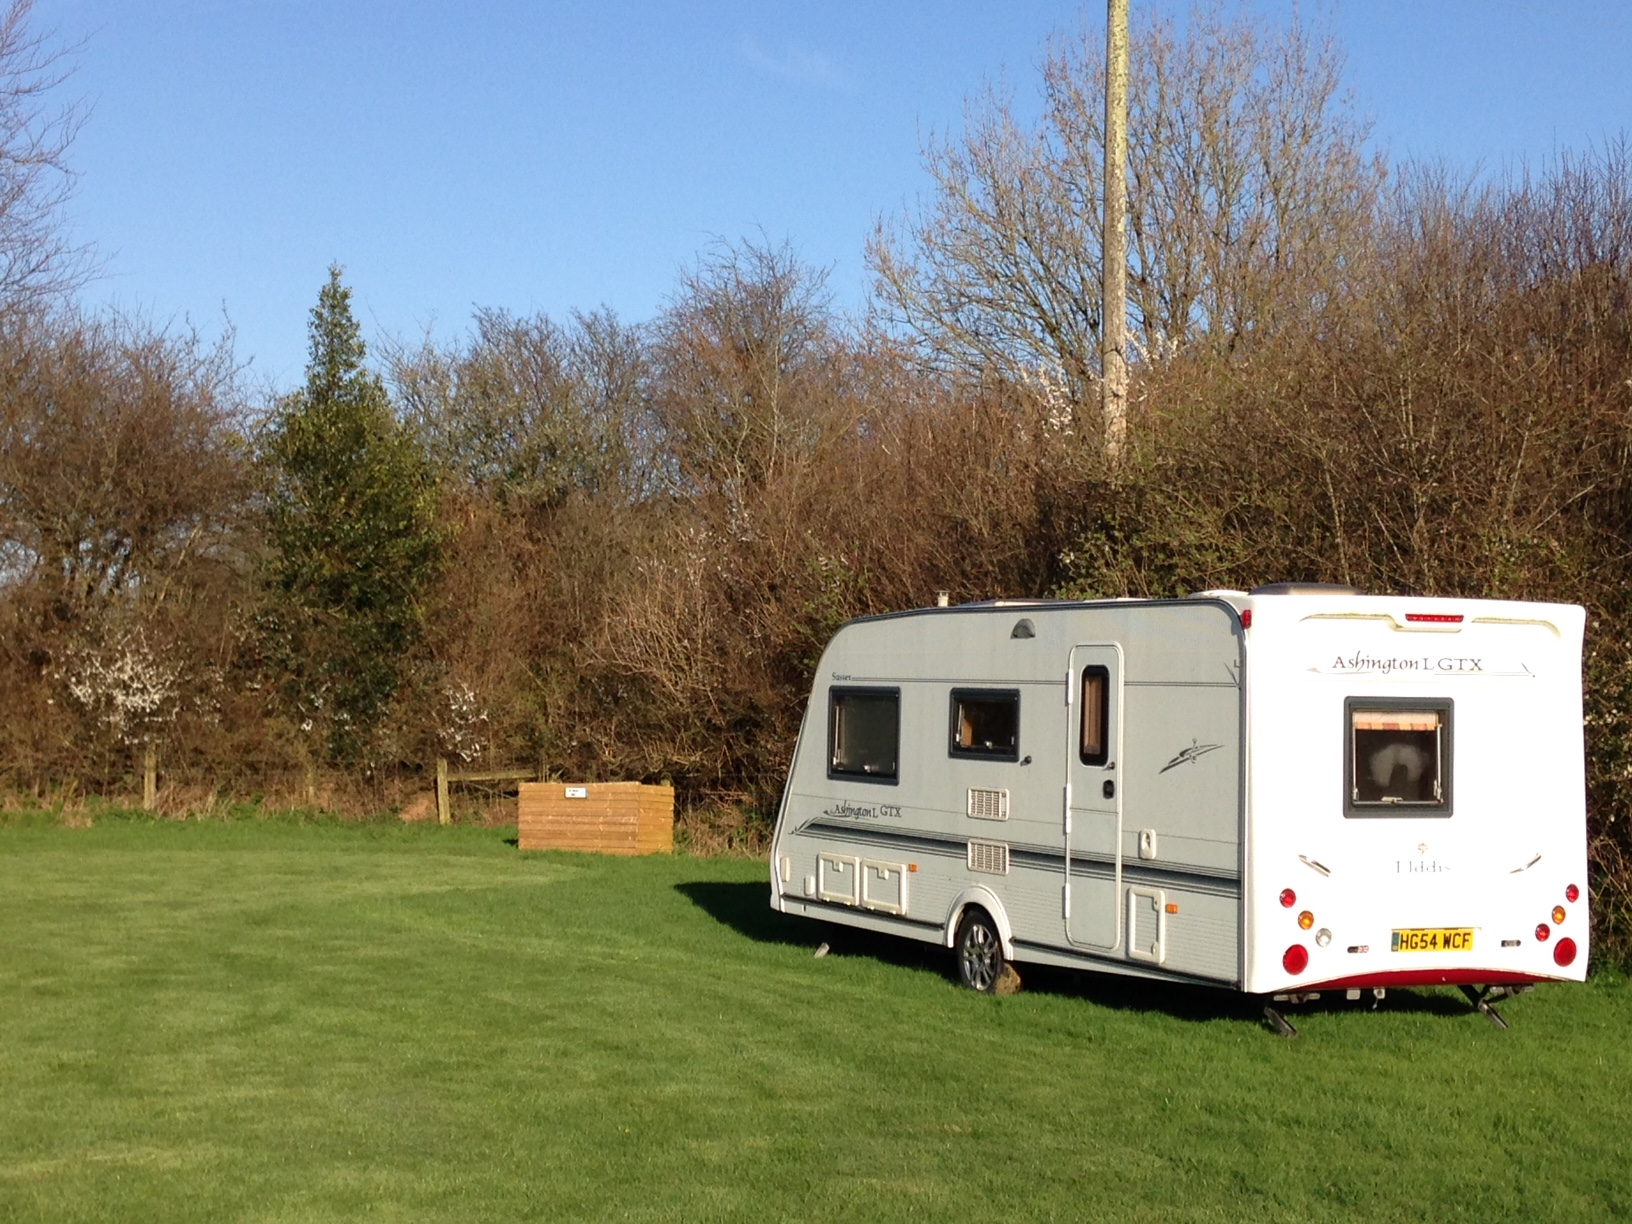 Large Pitch - Caravans, motorhomes, trailer tents and family sized tents, 4 persons included. There will be a small charge for additional adults/children. A large pitch is available at £12.00 per night. Electric hook up available for extra £3 per night